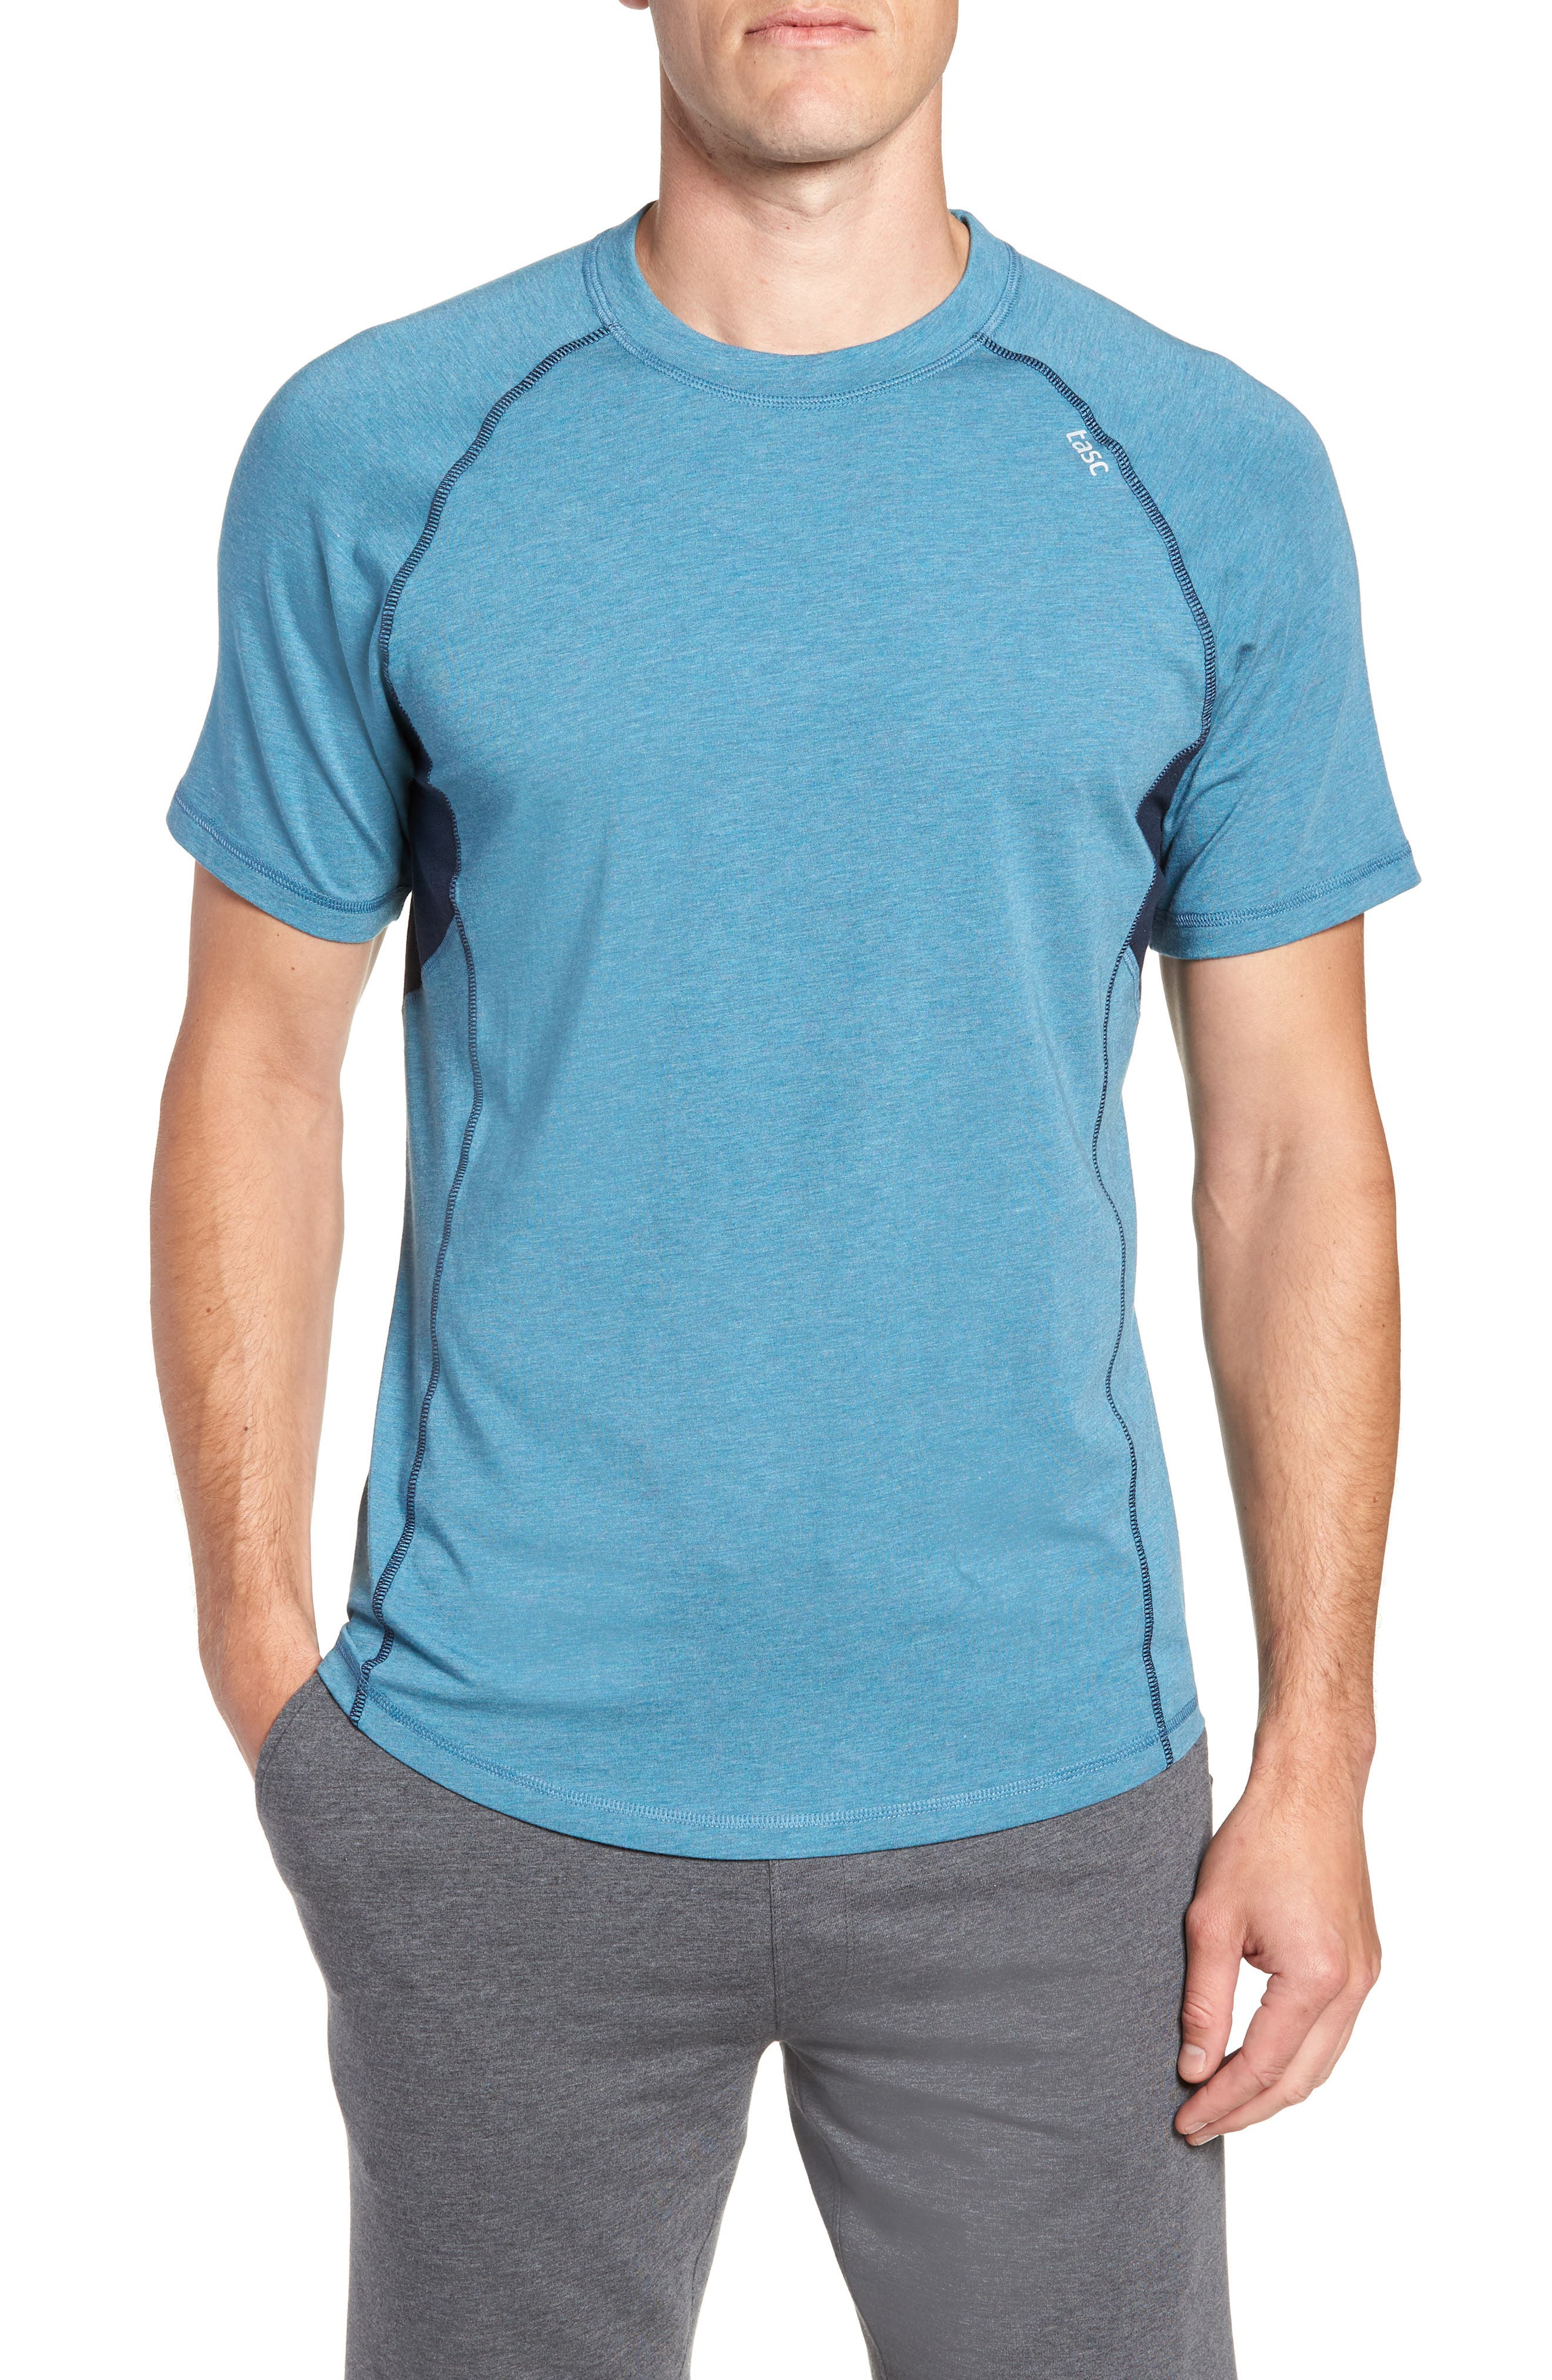 Charge II T-Shirt,                             Main thumbnail 1, color,                             Tranquility Sea Heather